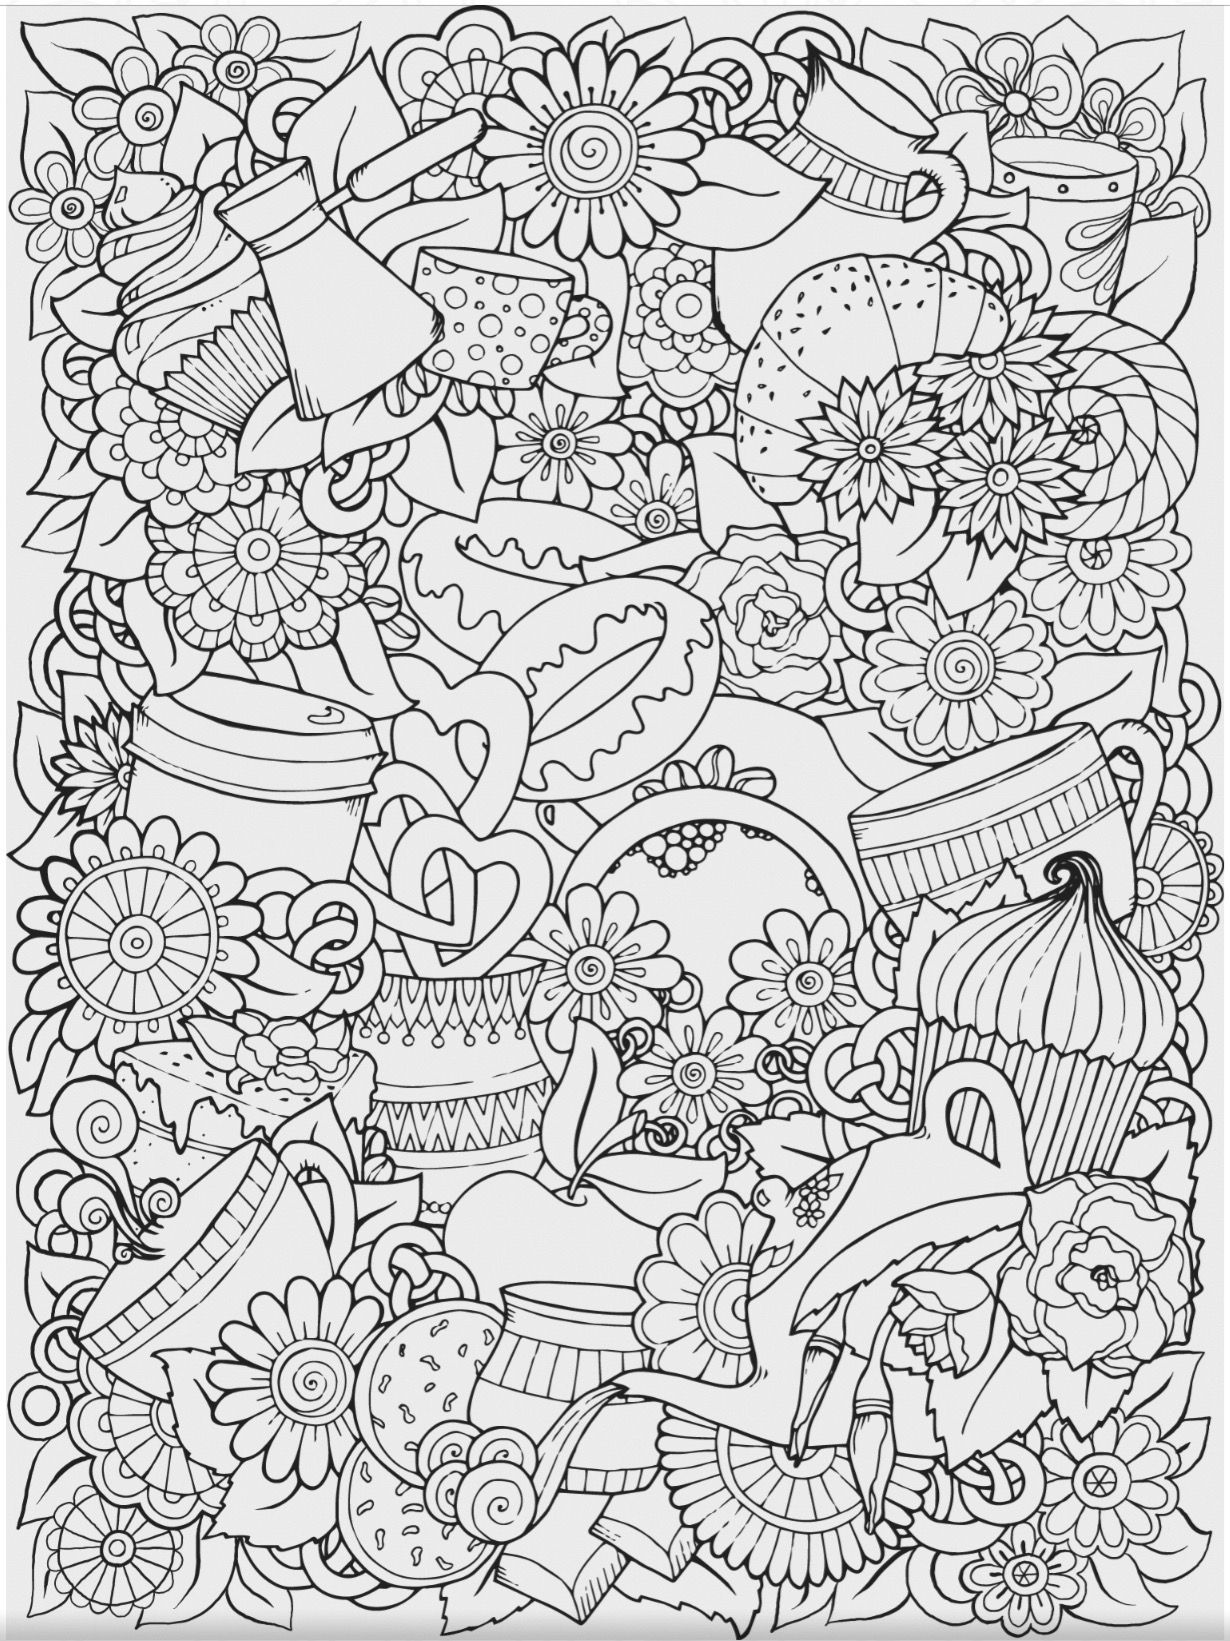 Pin By Carol Ratliff On Coloring X5